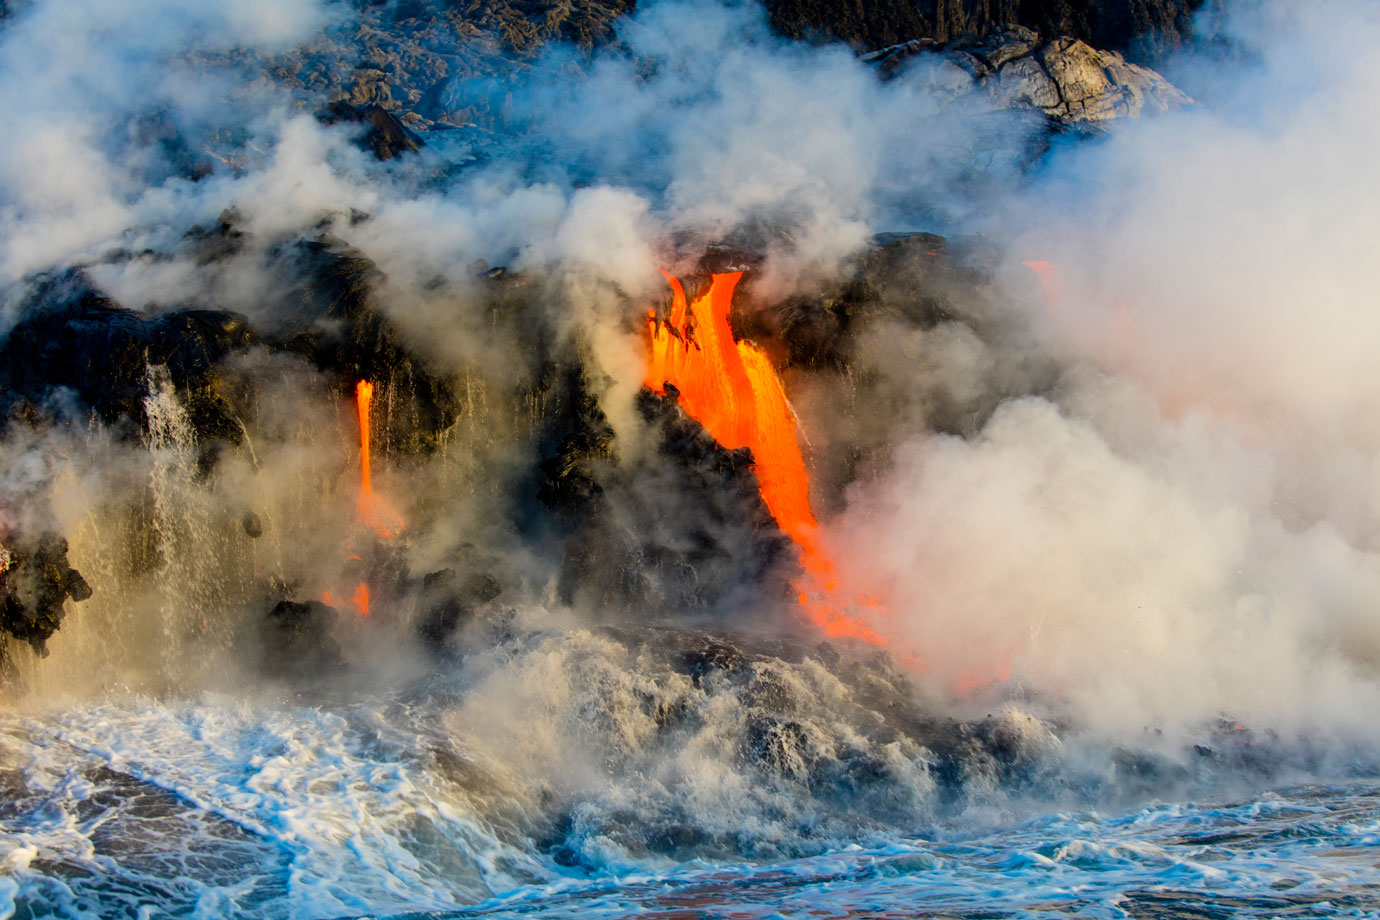 Lava from Kilauea Volcano flowing into ocean